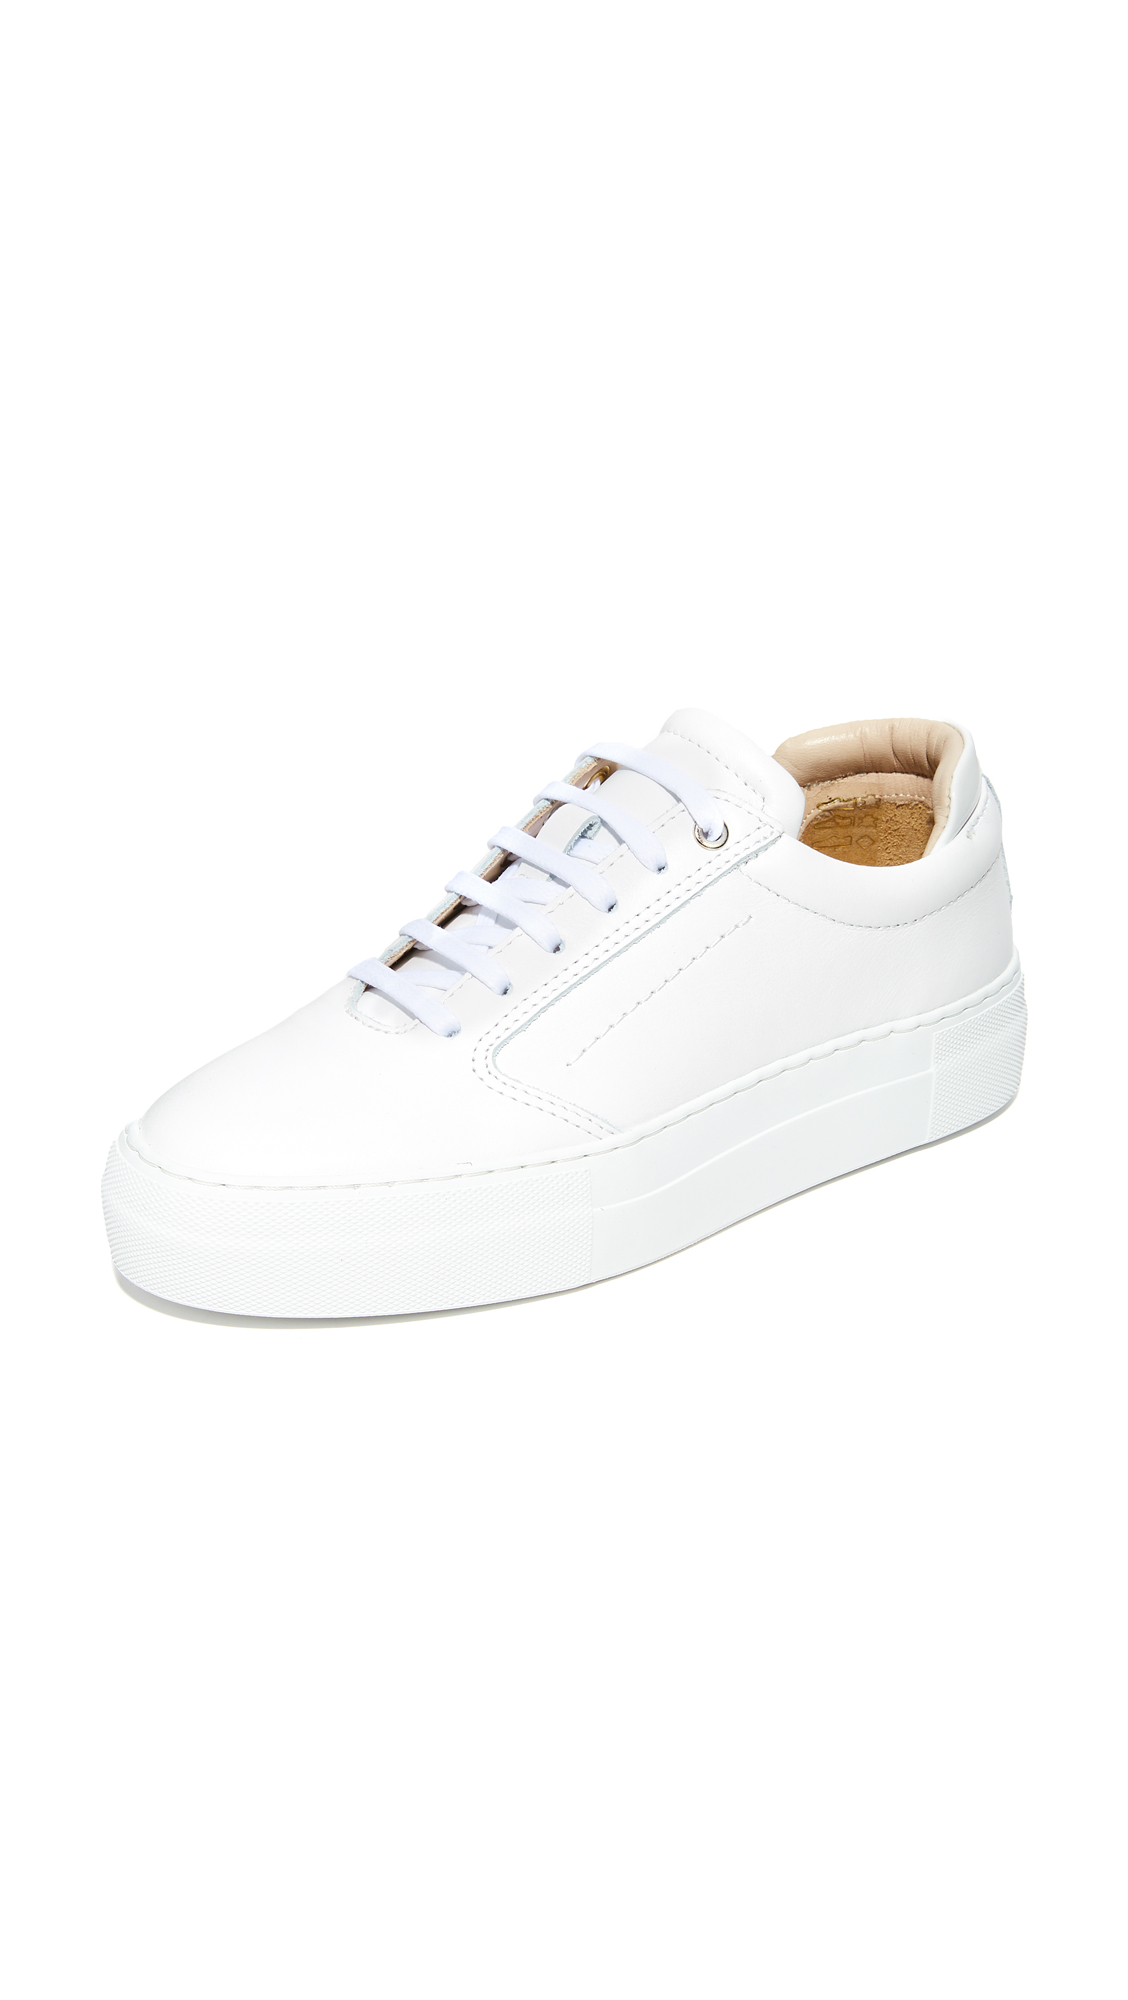 WANT Les Essentiels Lalibela Sneakers In White/White